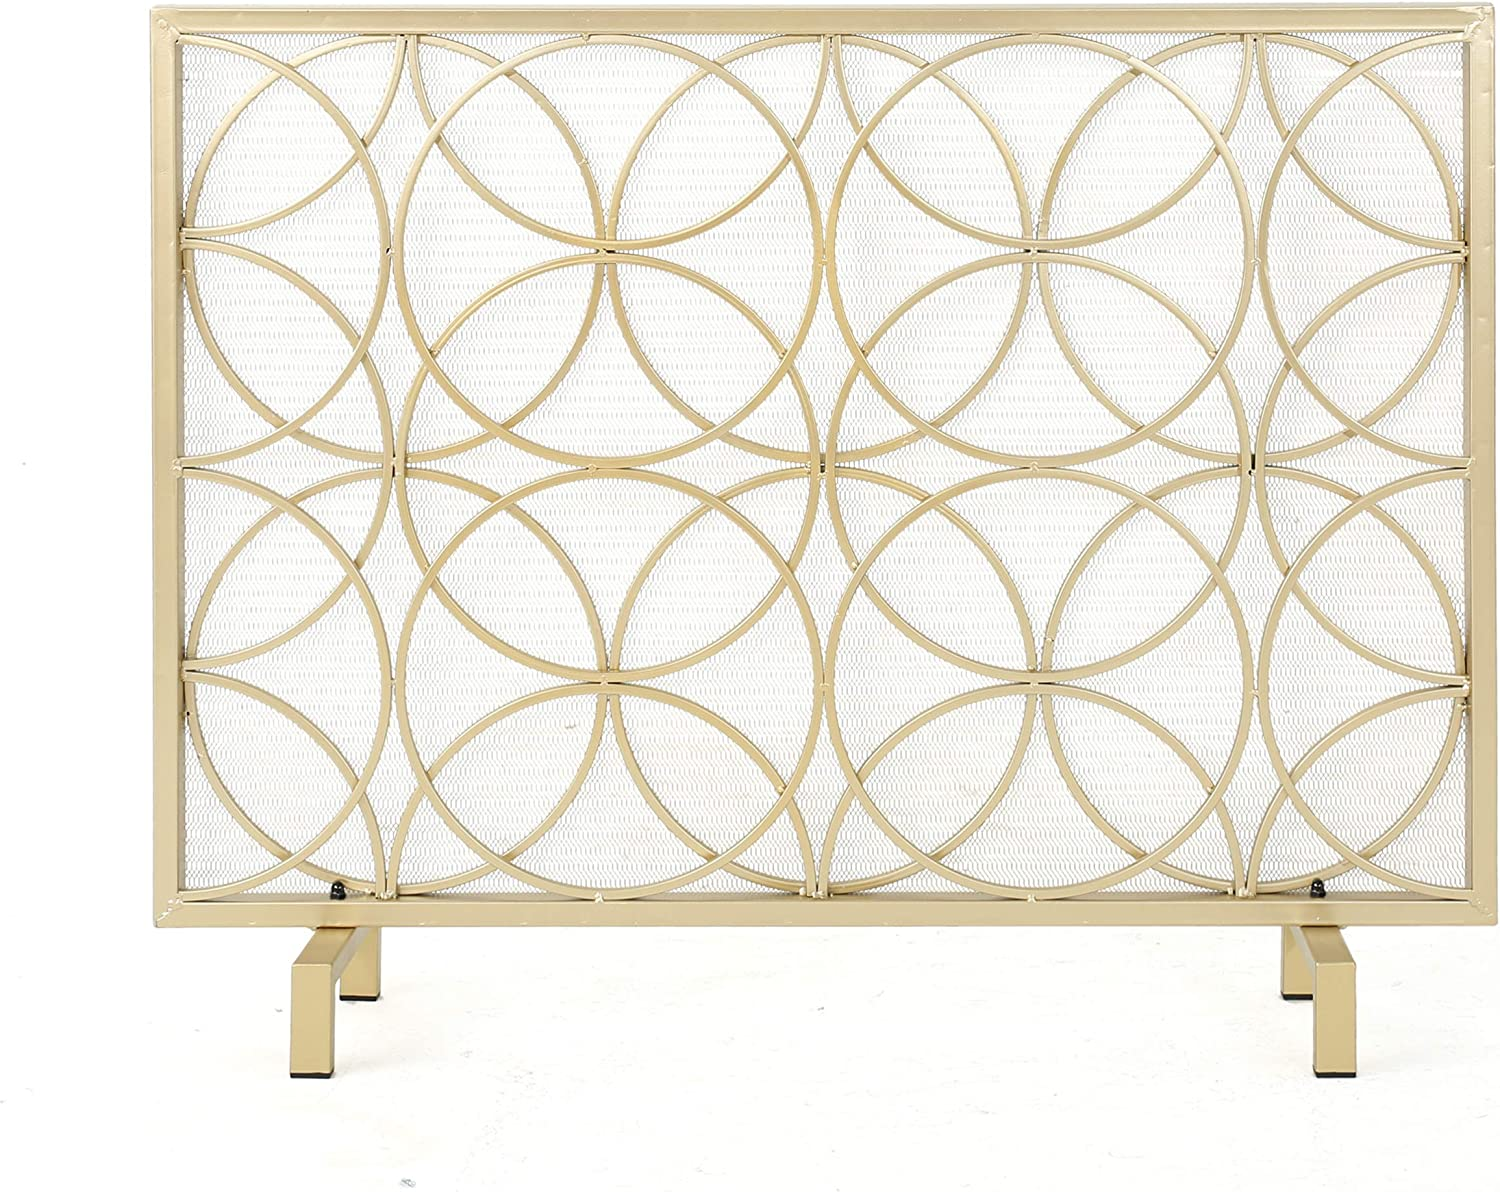 Amazon Com Christopher Knight Home Valeno Single Panel Iron Fireplace Screen Gold Furniture Decor